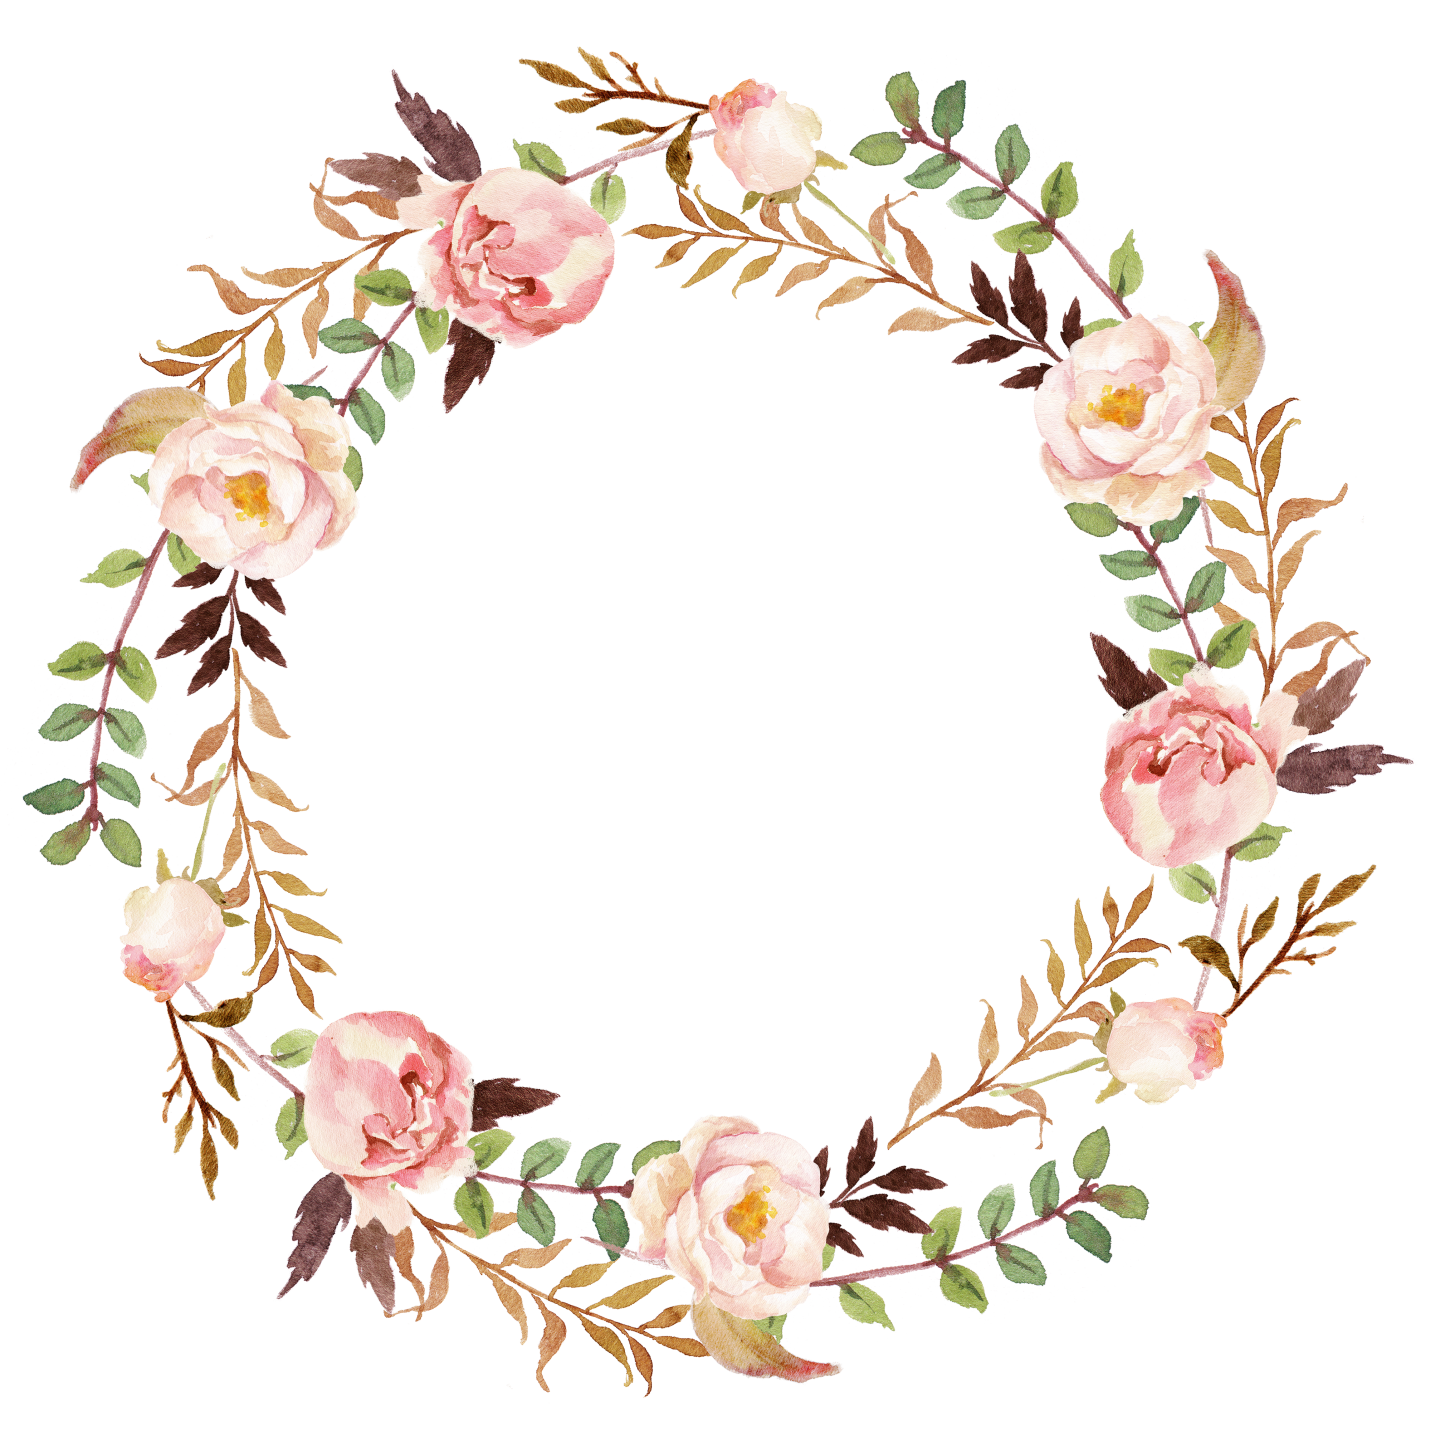 Wedding invitation Paper Wreath Clip art.